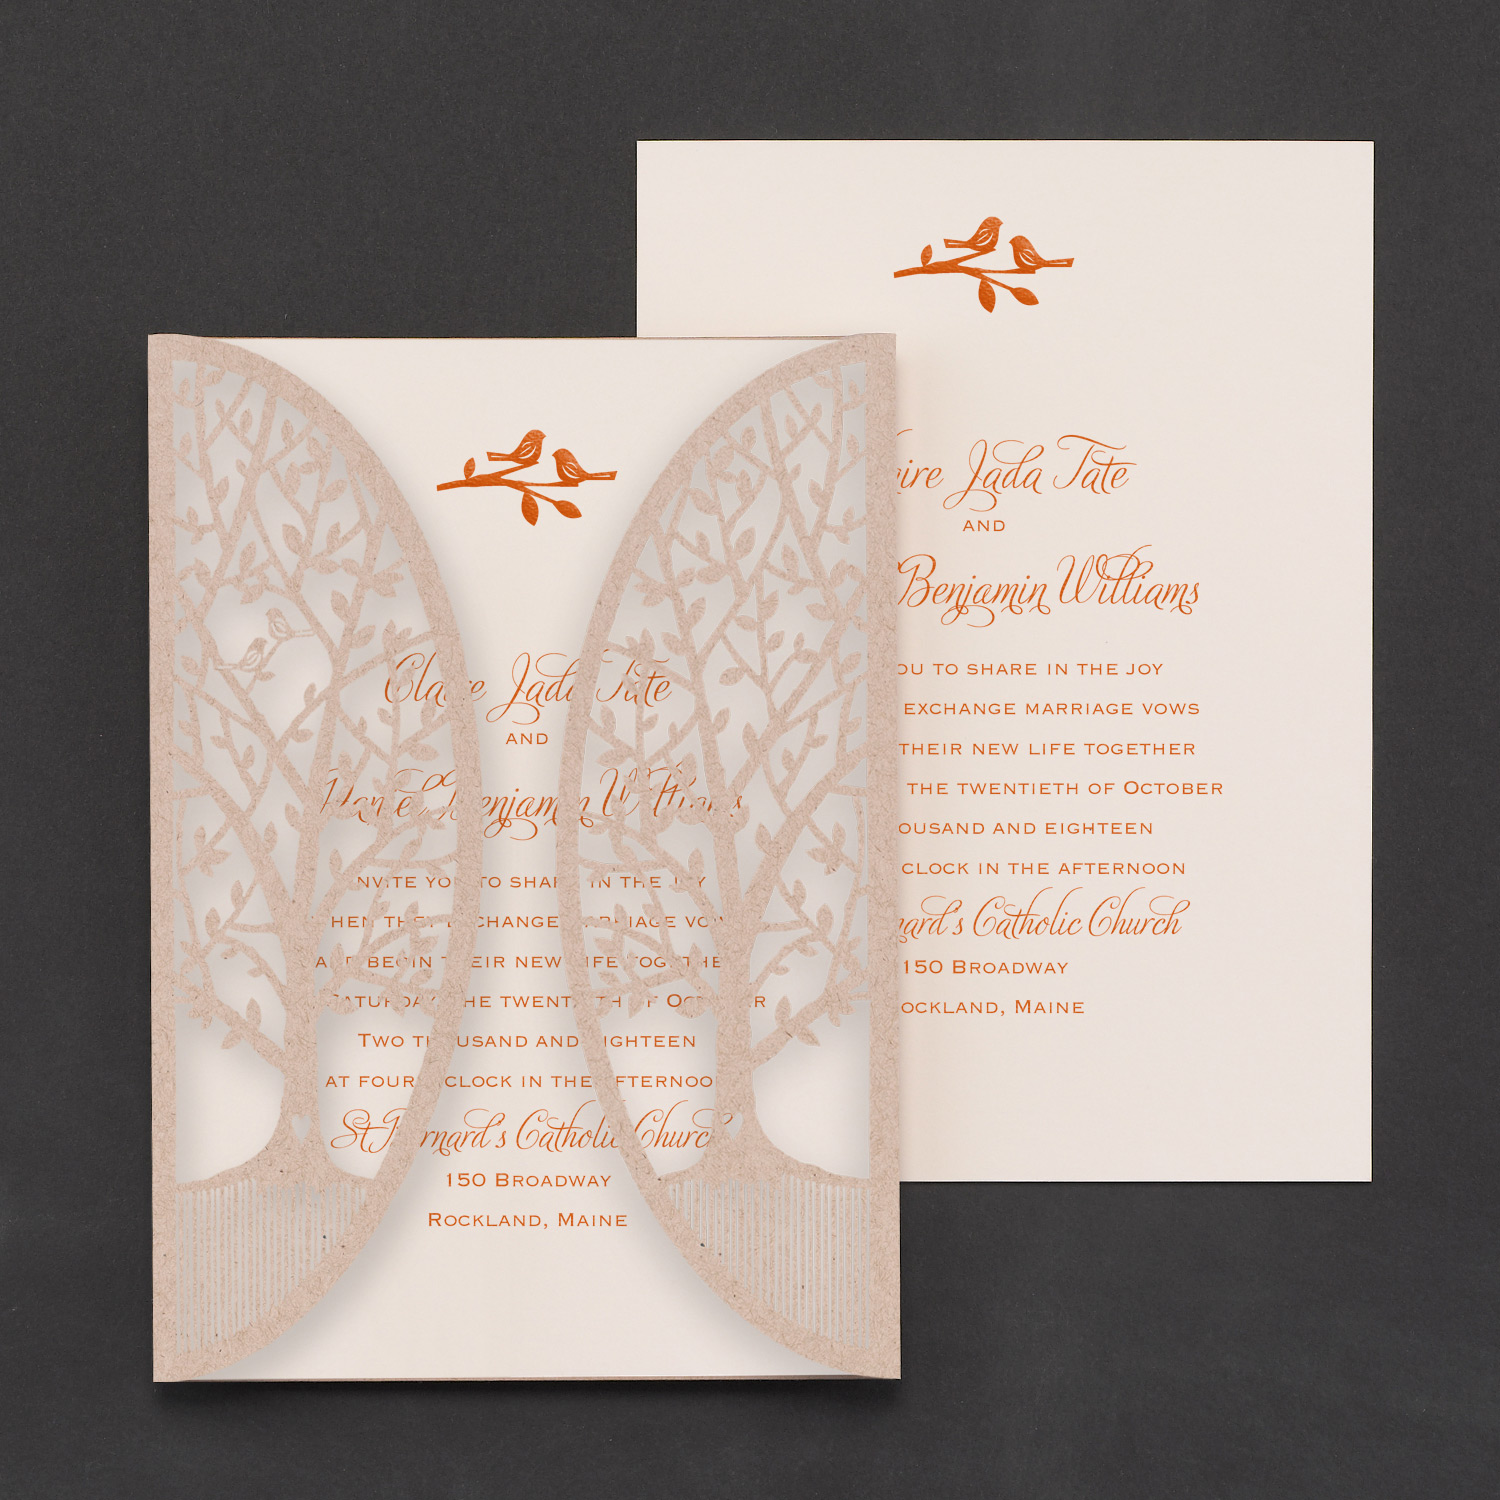 Wedding invitations inkcorporated designs garden gate monicamarmolfo Image collections